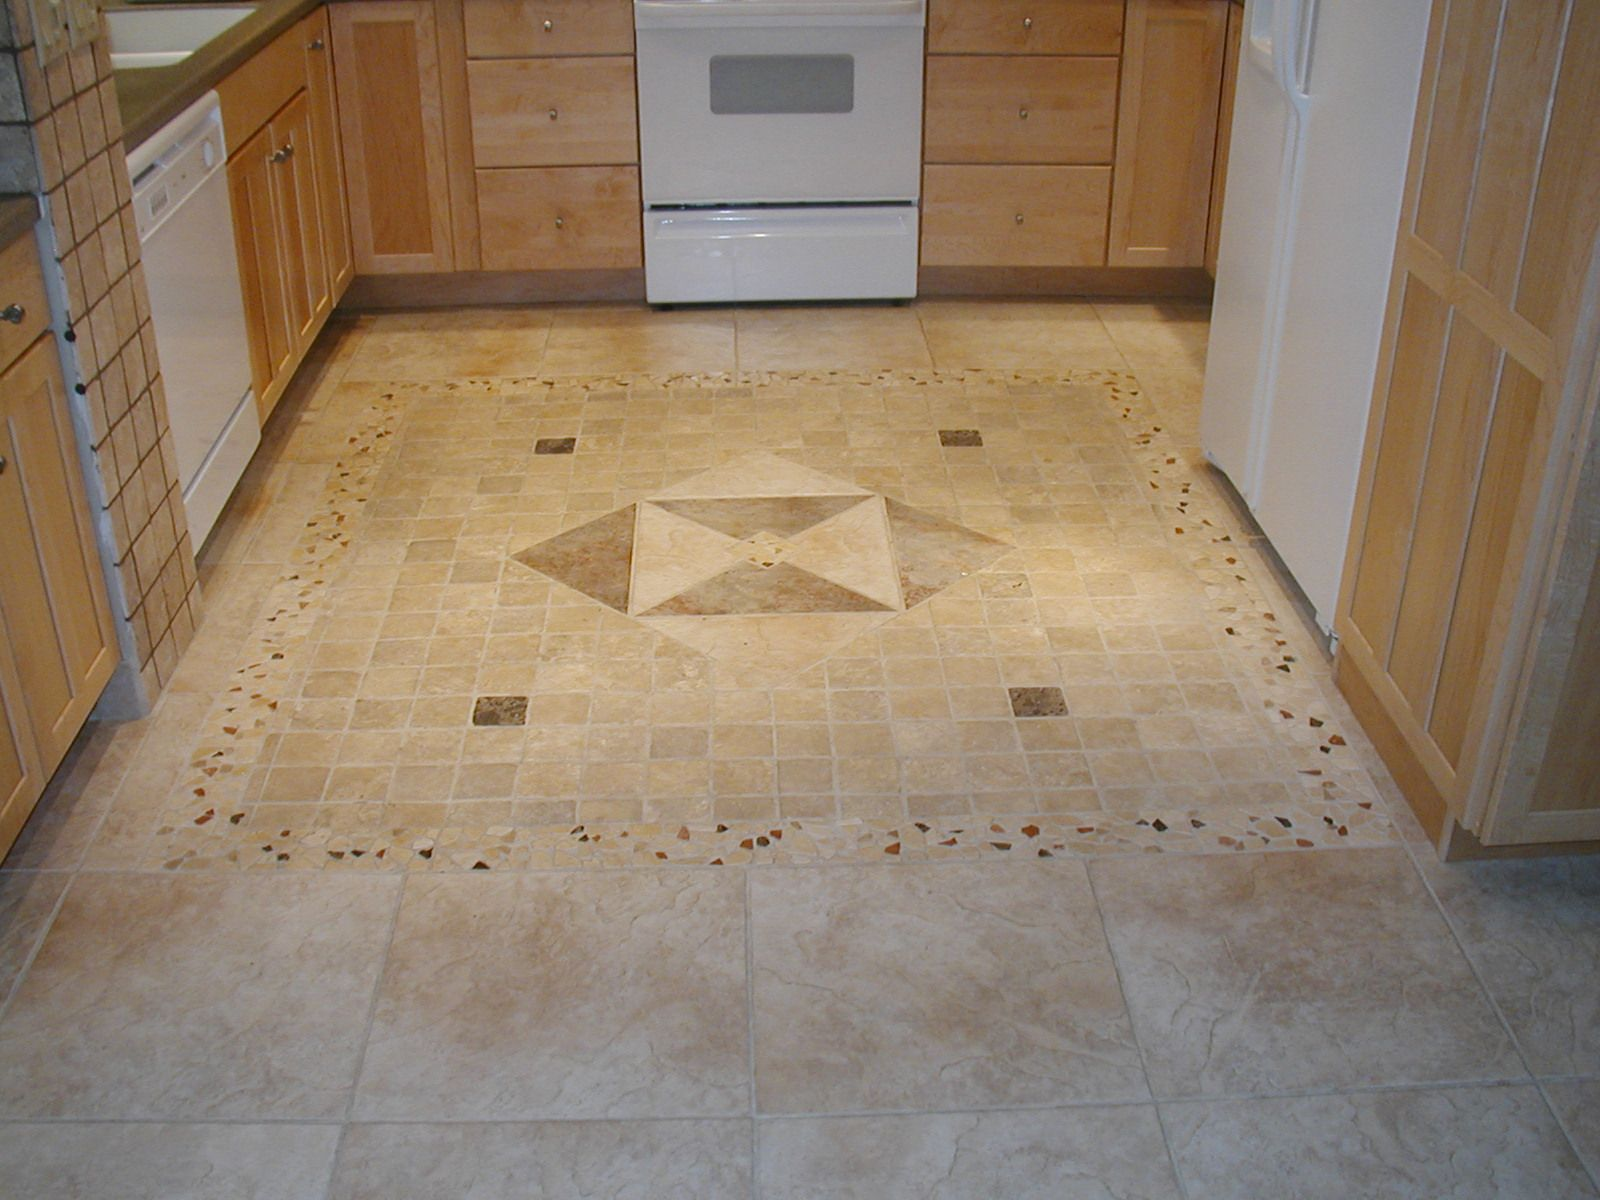 Uncategorized Tiles Design For Kitchen Floor amazing foyer tile floor designs kitchen 1600 x 1200 disclaimer we do not own any of these picturesgraphics